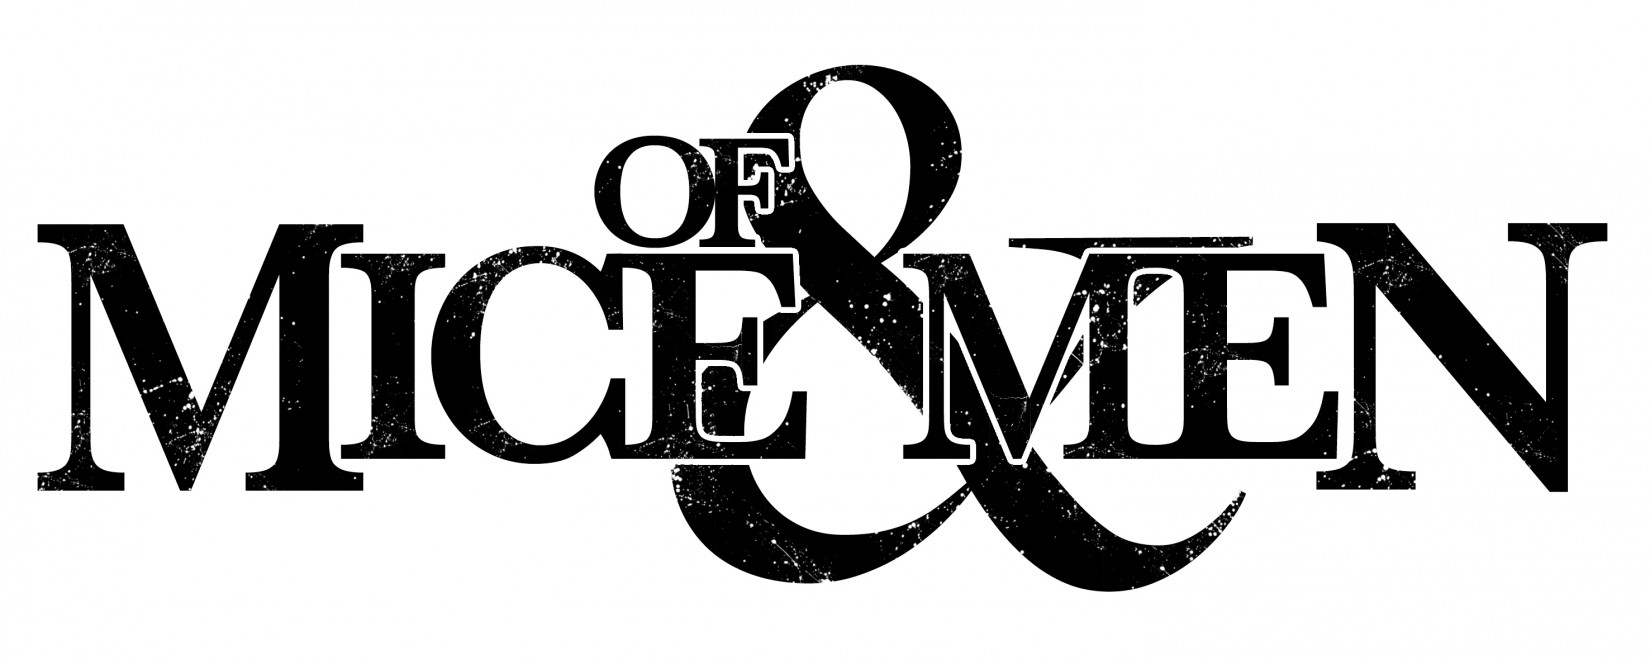 Of Mice And Men - Font